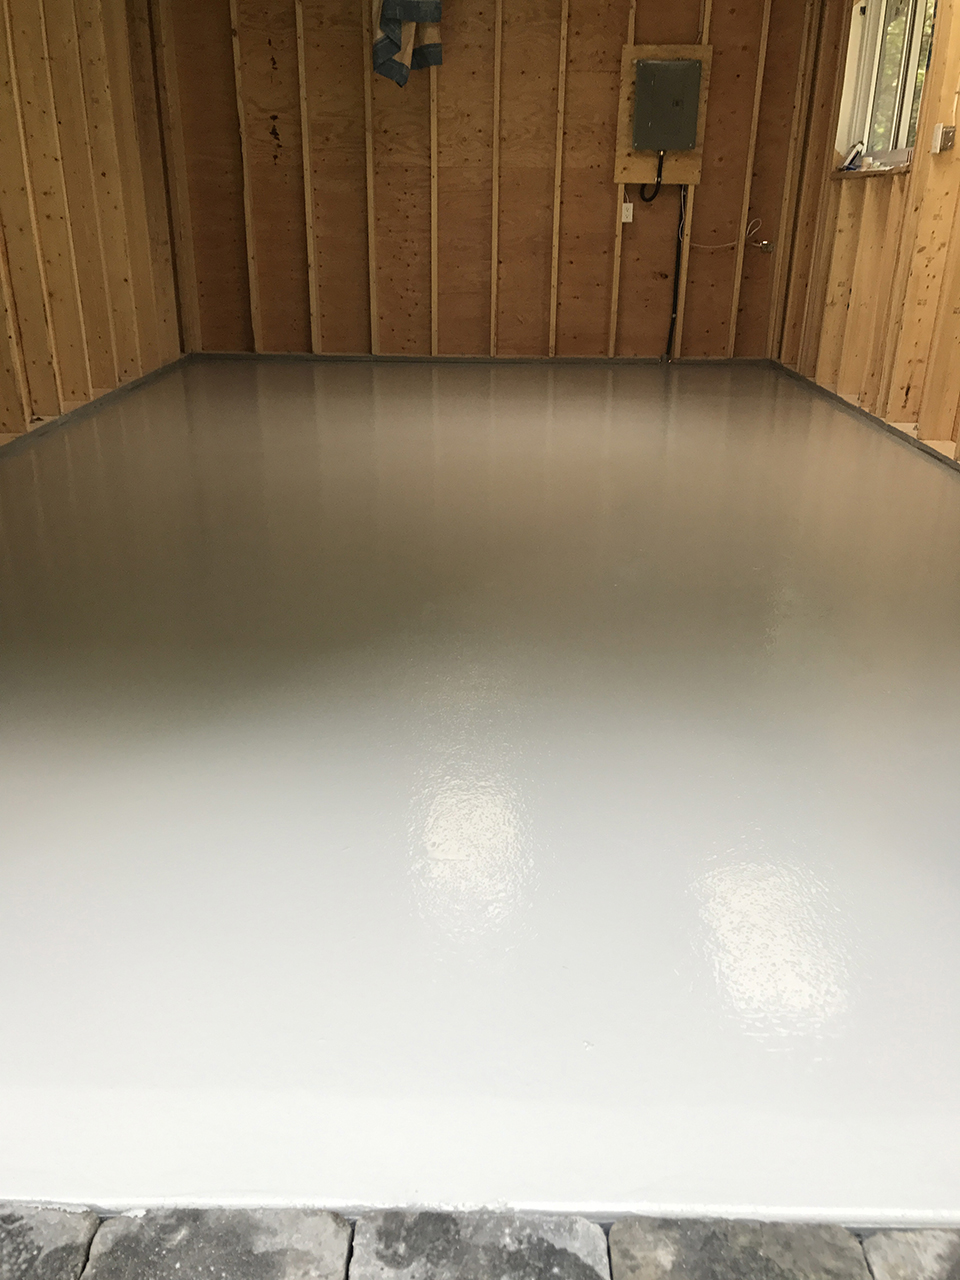 Get experienced industrial floor coating contractors at brama industries brama industries commercial and industrial floor coating contractors have earned a reputation for their high standards and precision work dailygadgetfo Images